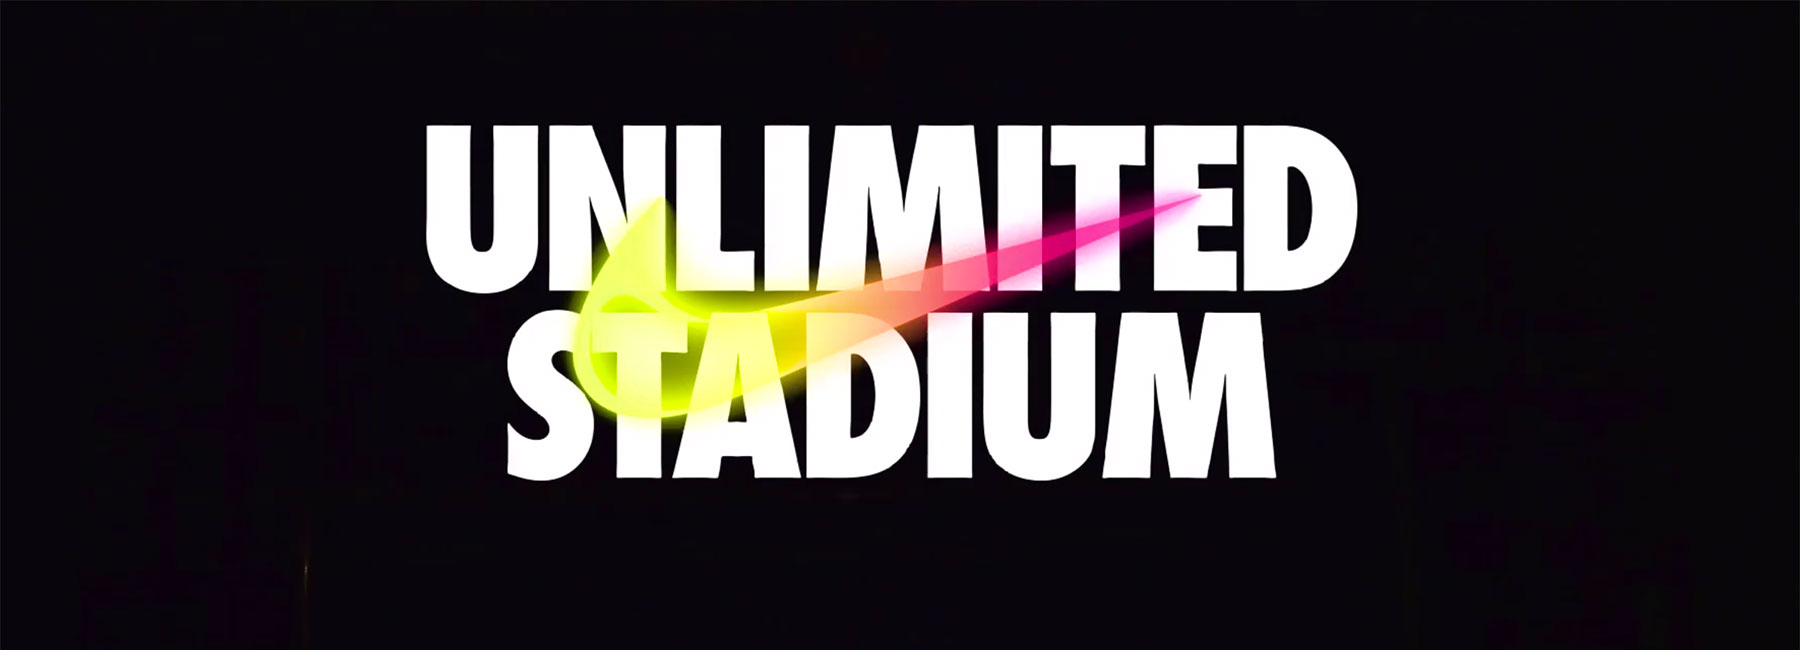 Nike Unlimited Stadium